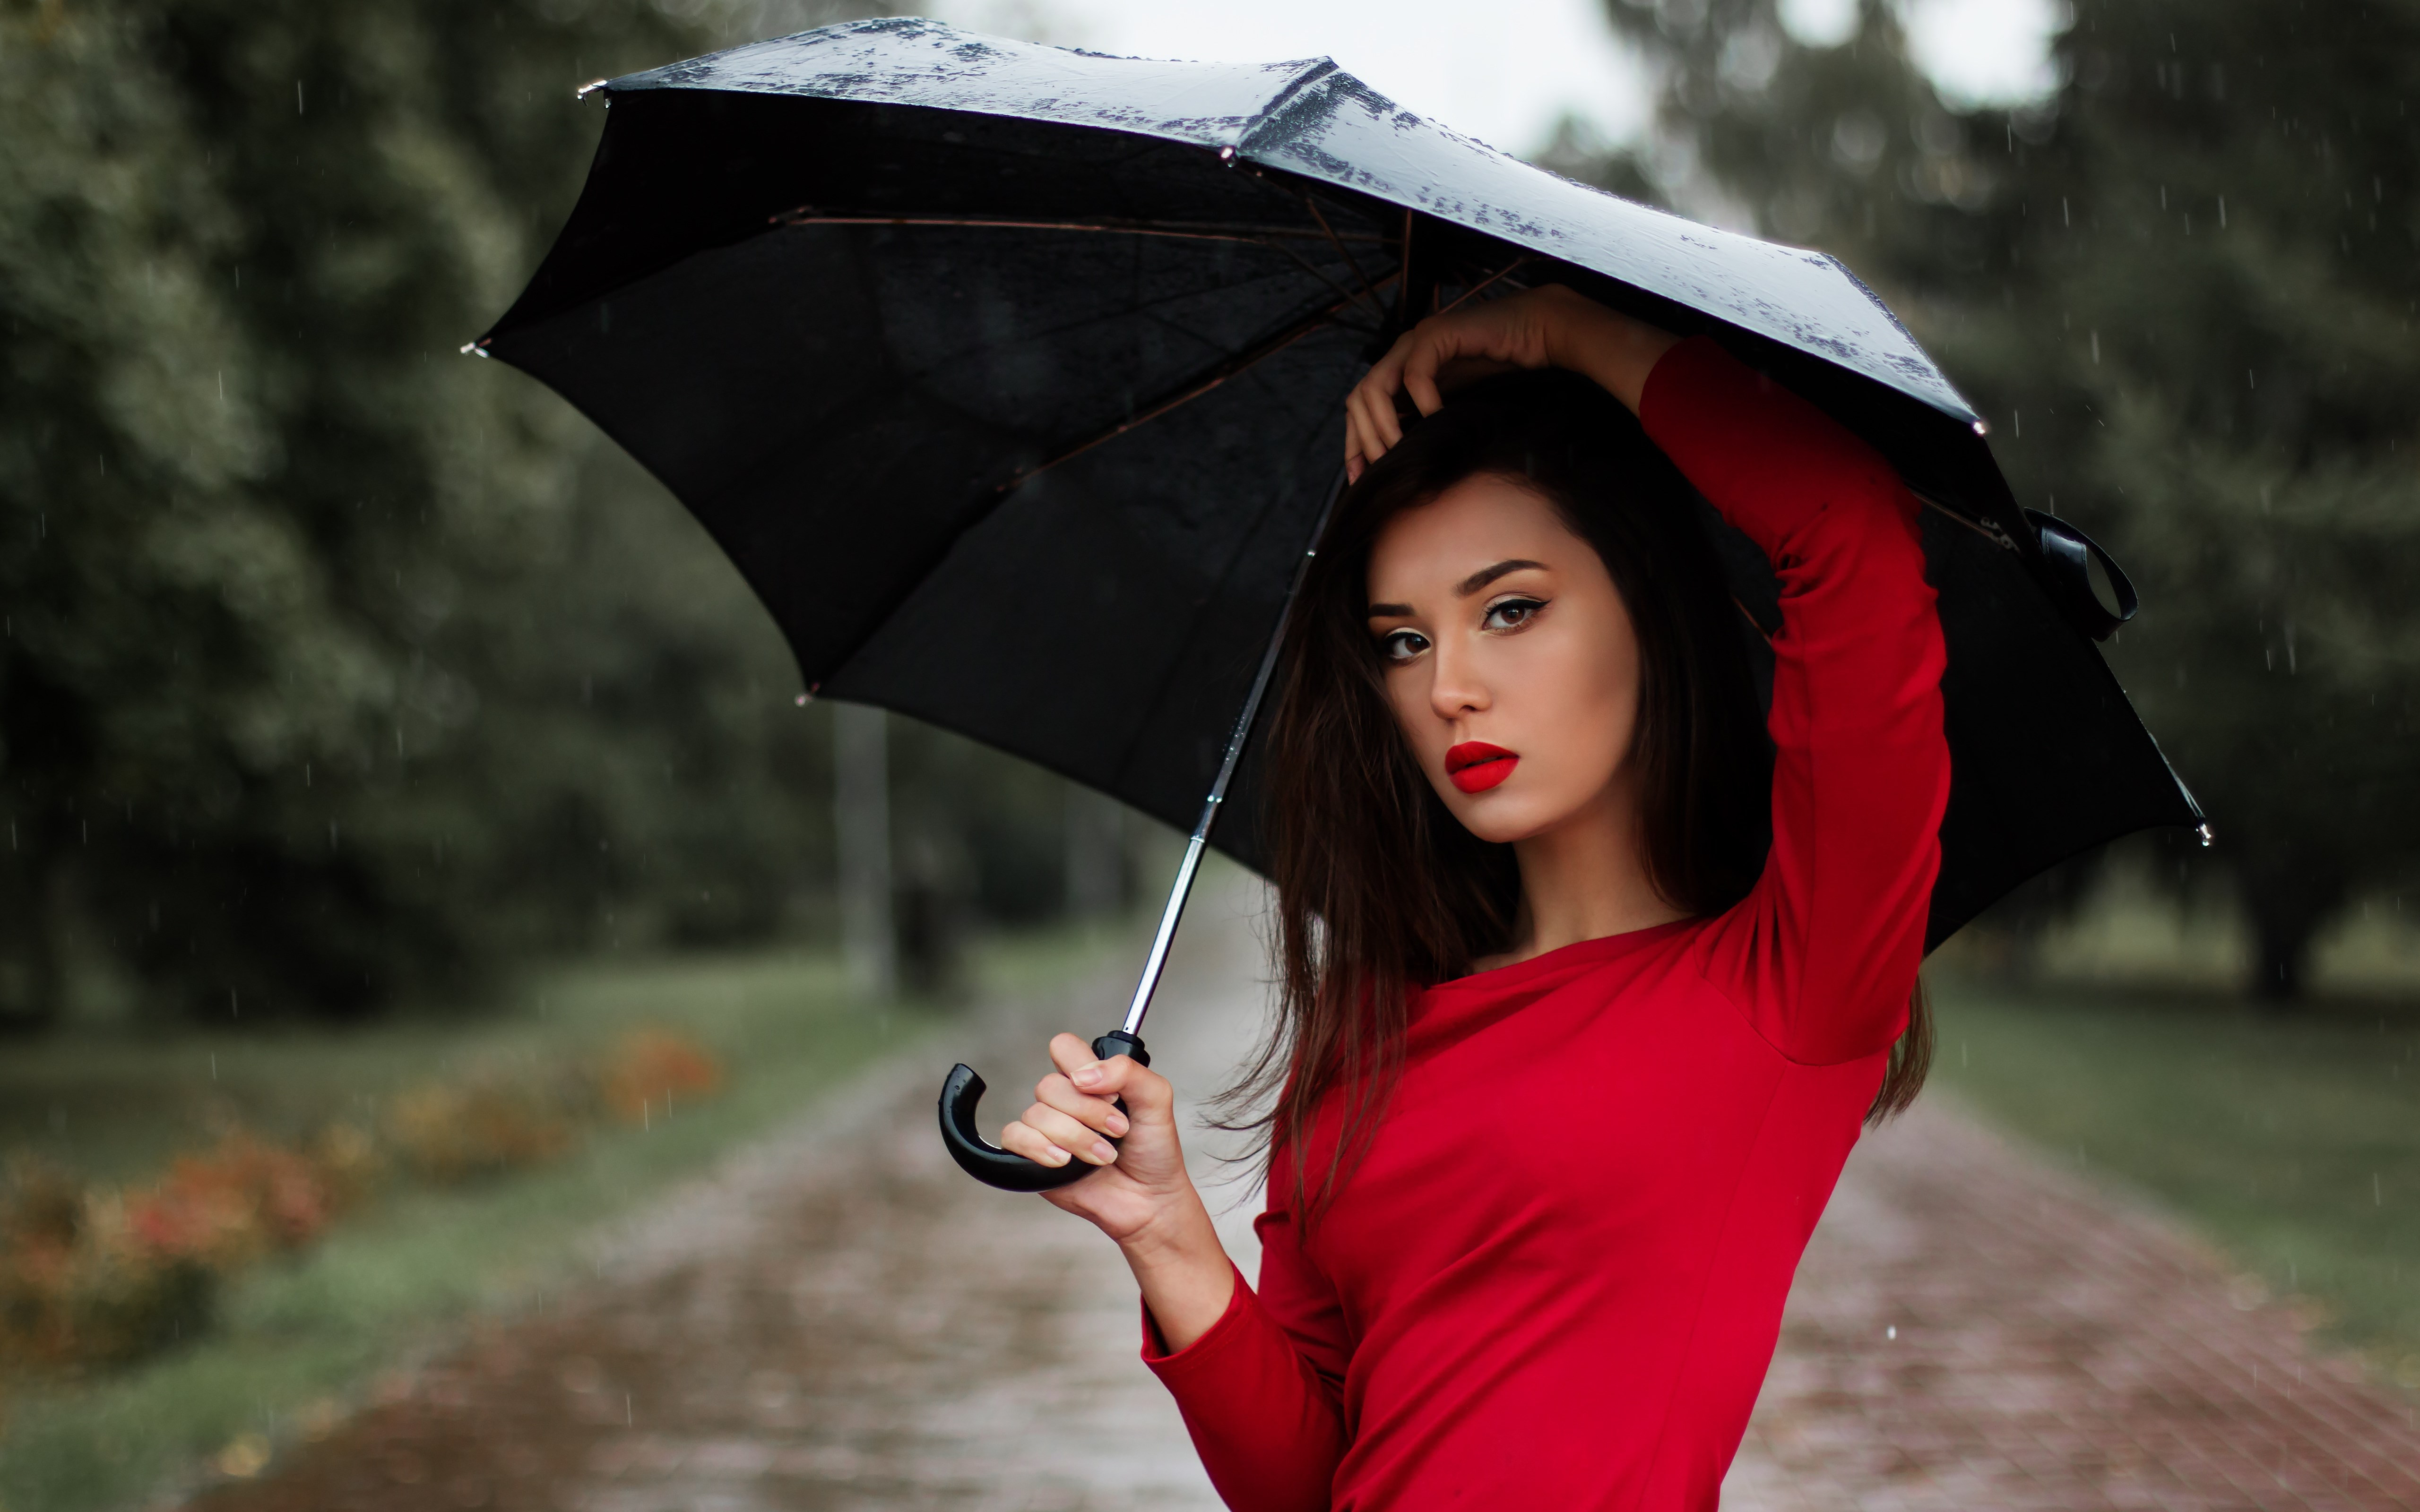 Beauitful girl in a rainy day wallpaper 5120x3200